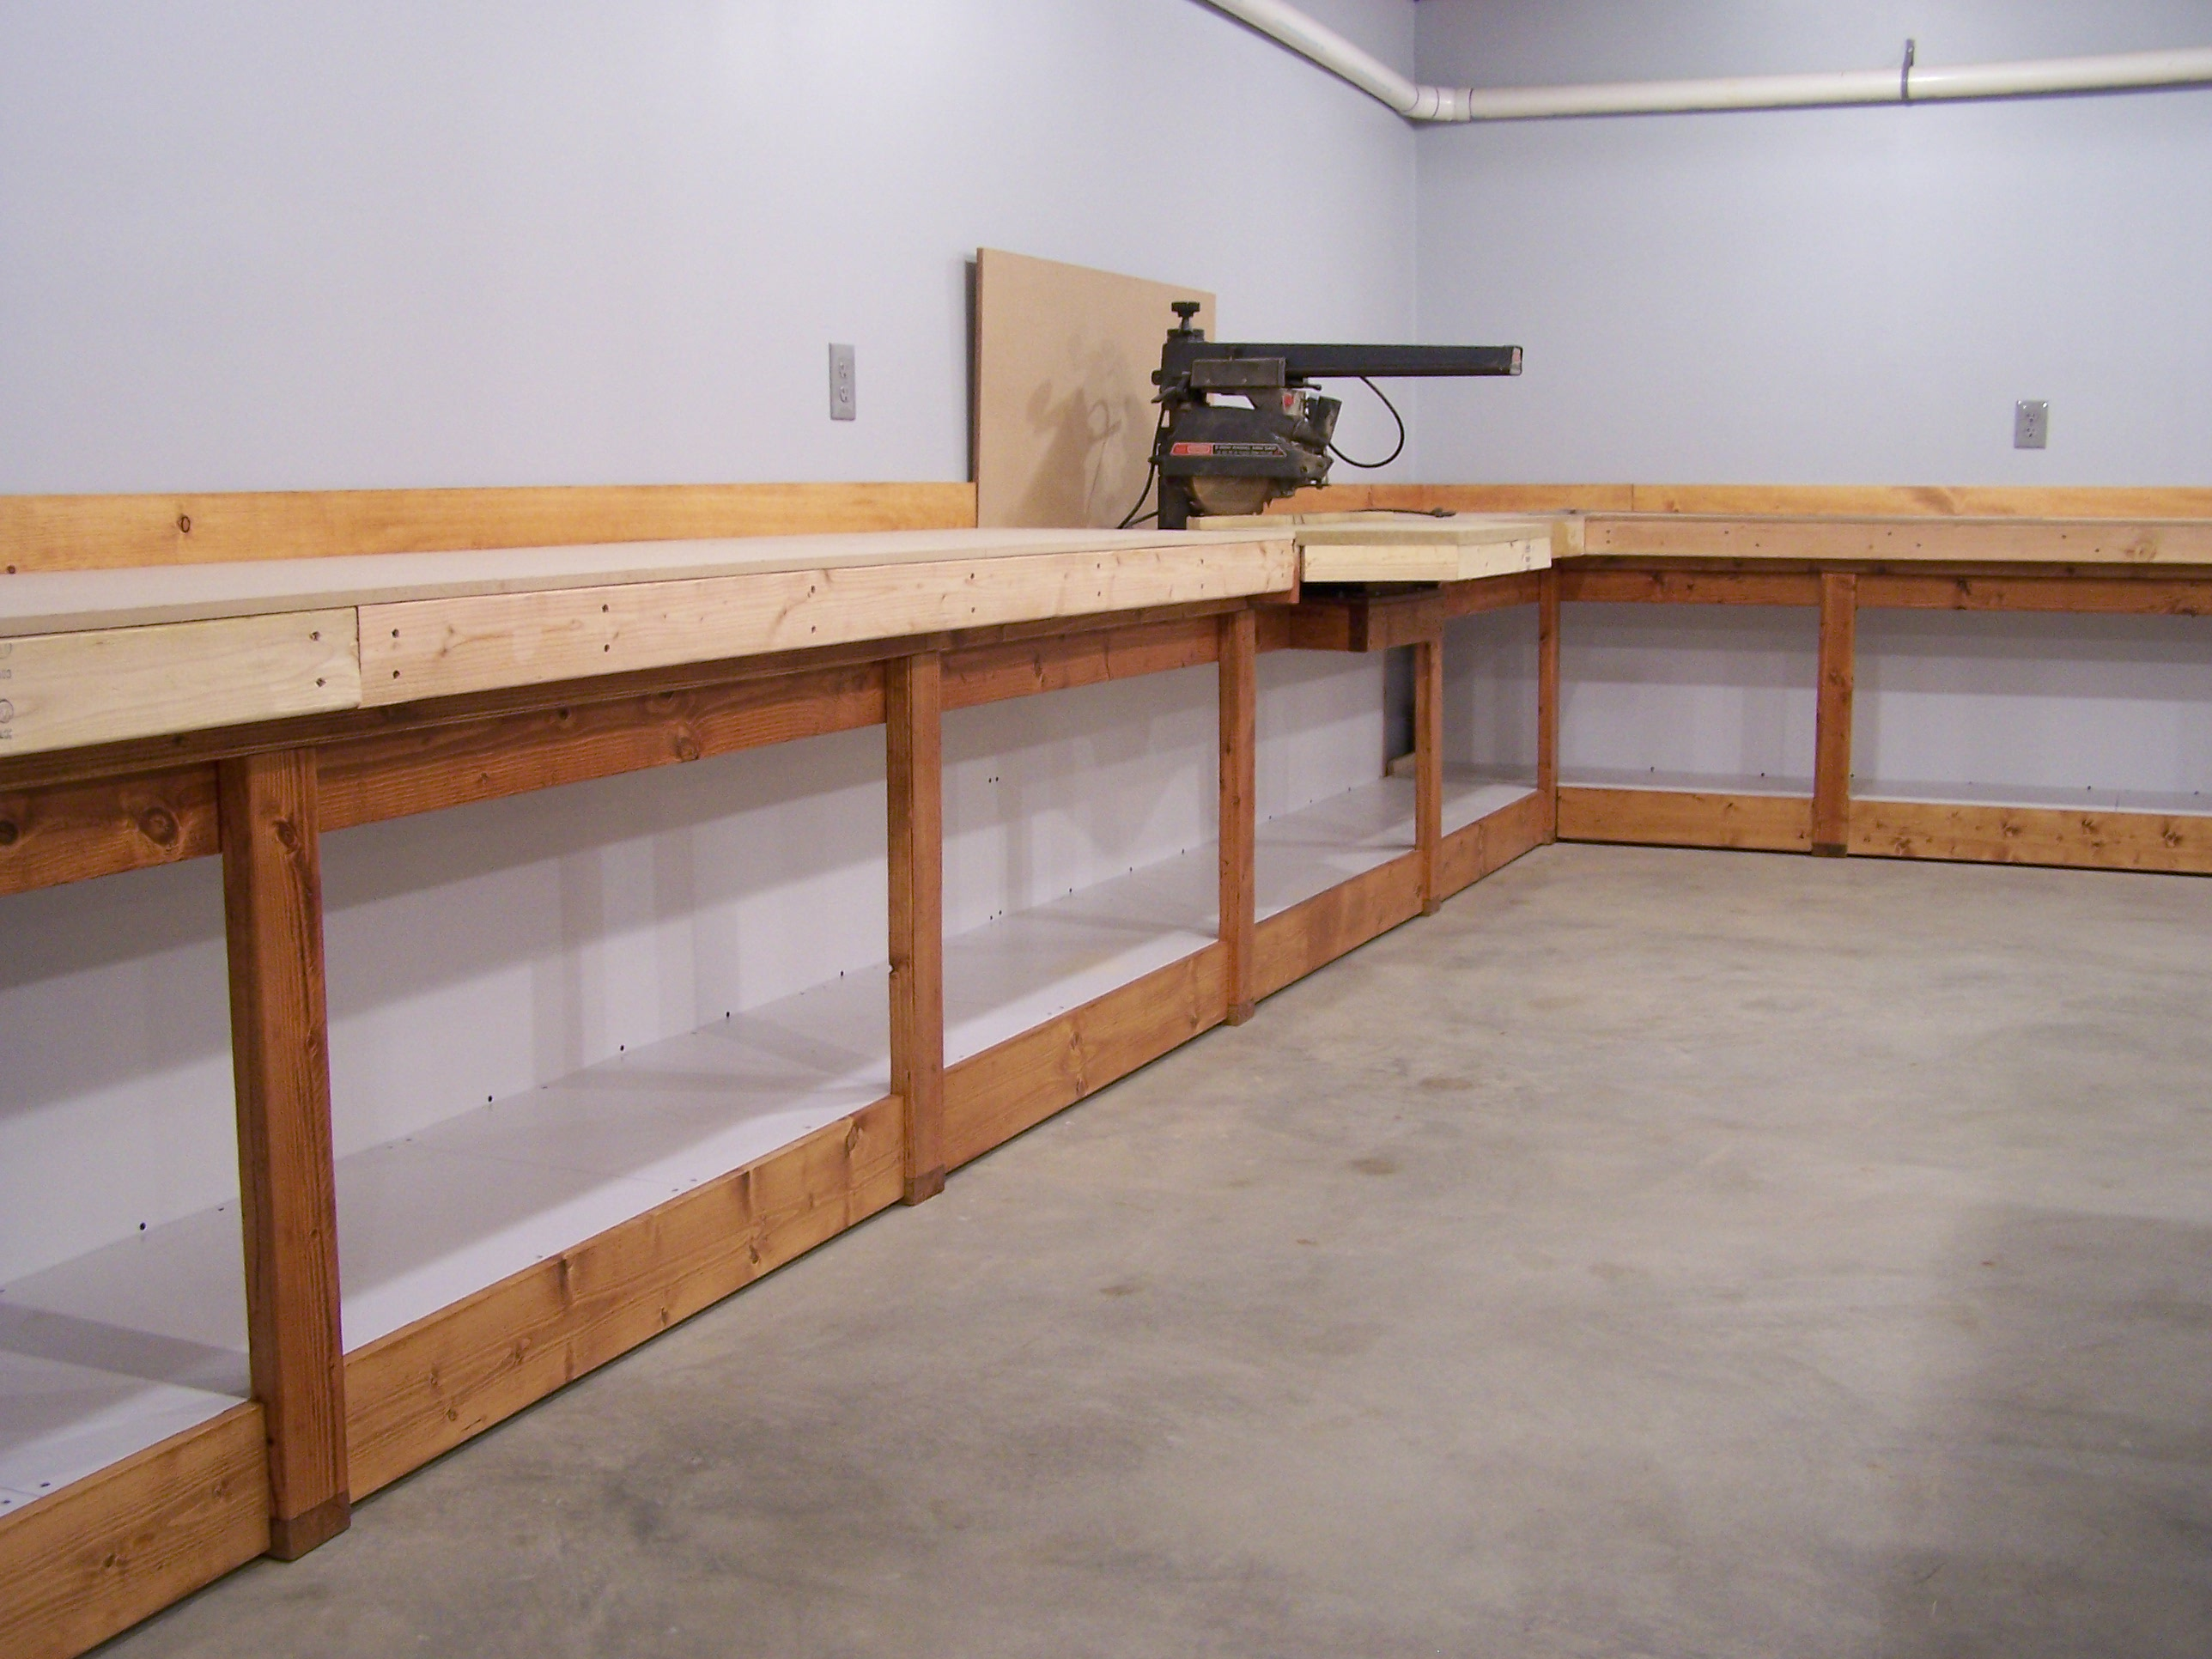 wood workbench plans wall mounted pdf plans. Black Bedroom Furniture Sets. Home Design Ideas